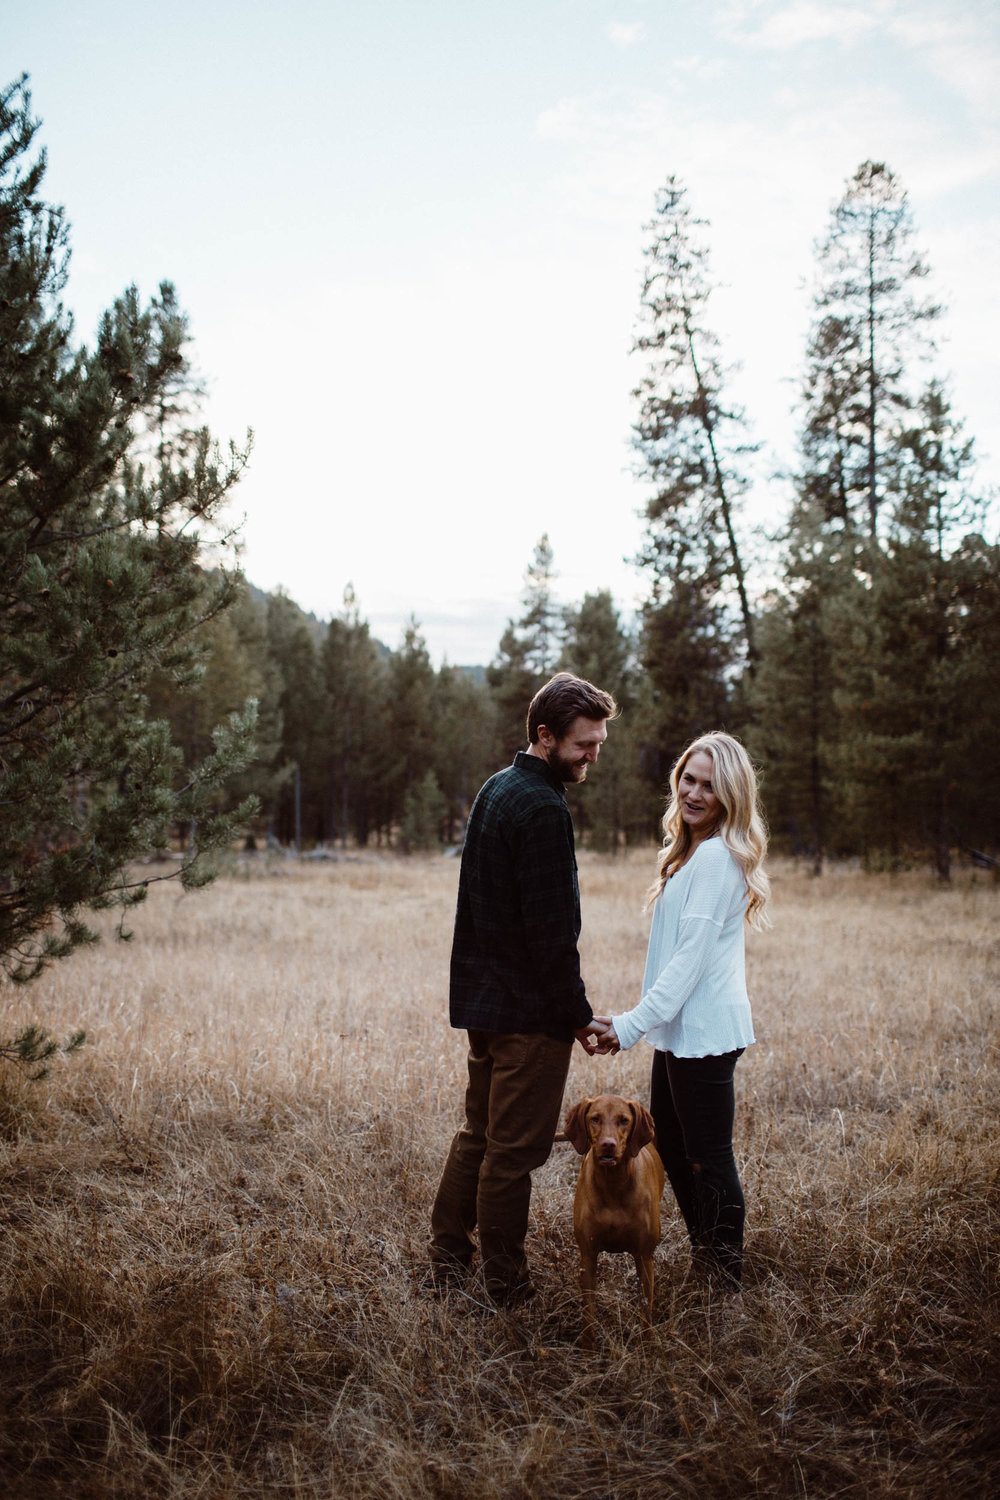 k_T_idaho_engagment_photos-20.jpg